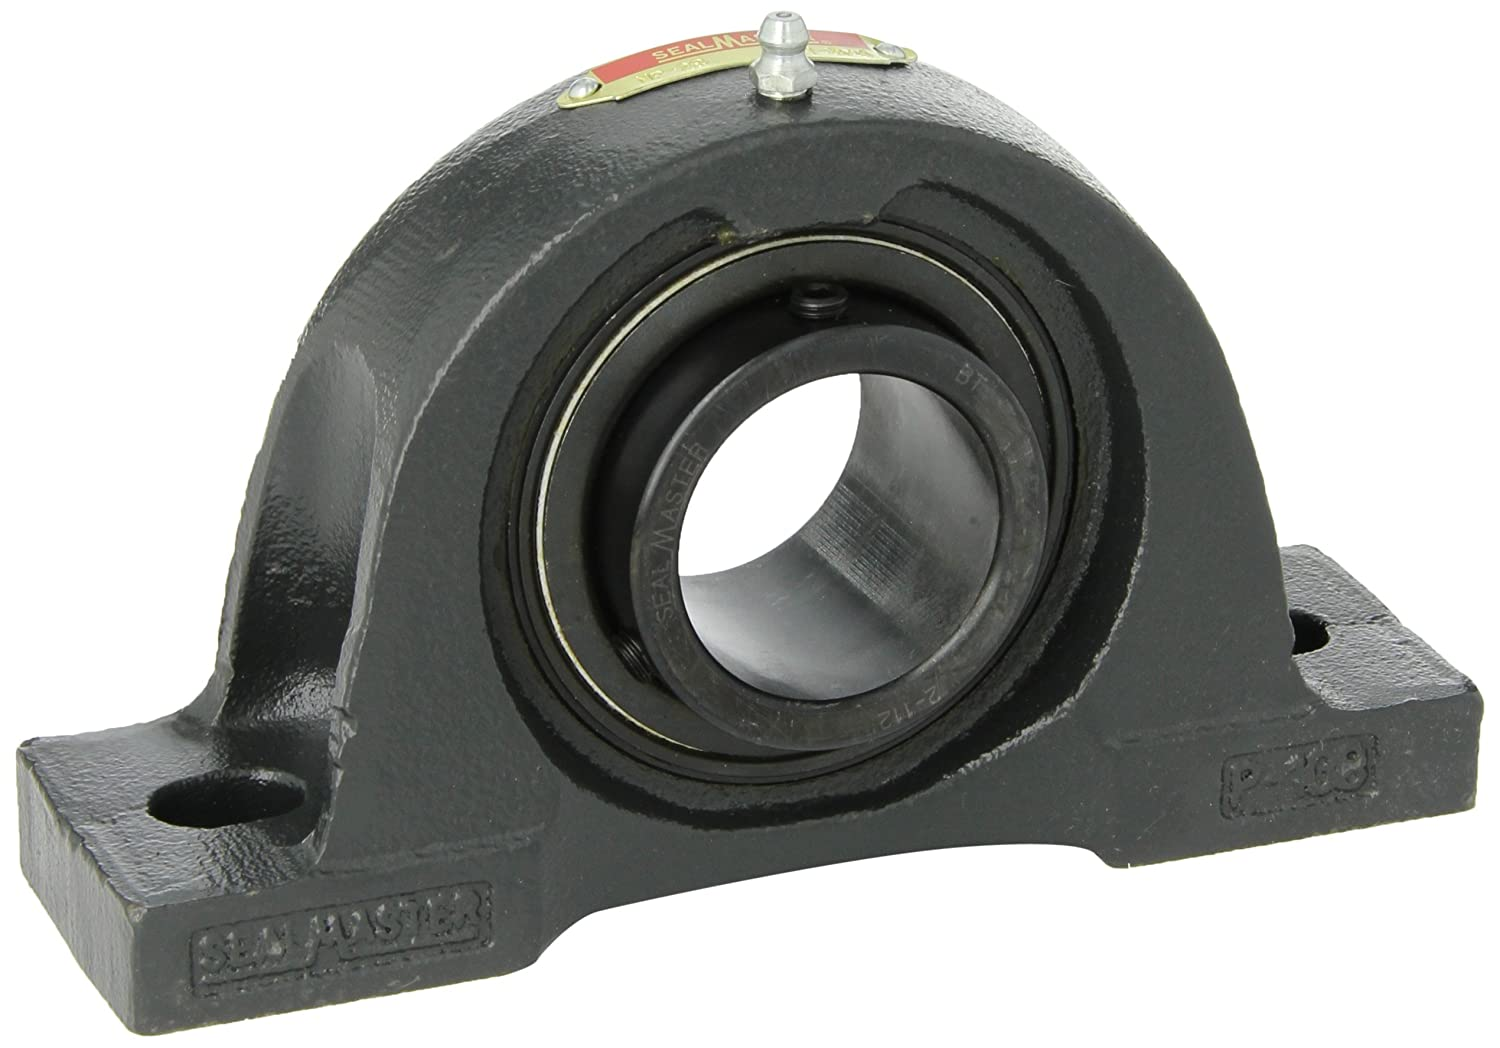 Sealmaster NP-28 Pillow Block Bearing Max 67% OFF Limited time for free shipping Type Ball Non-Expansion